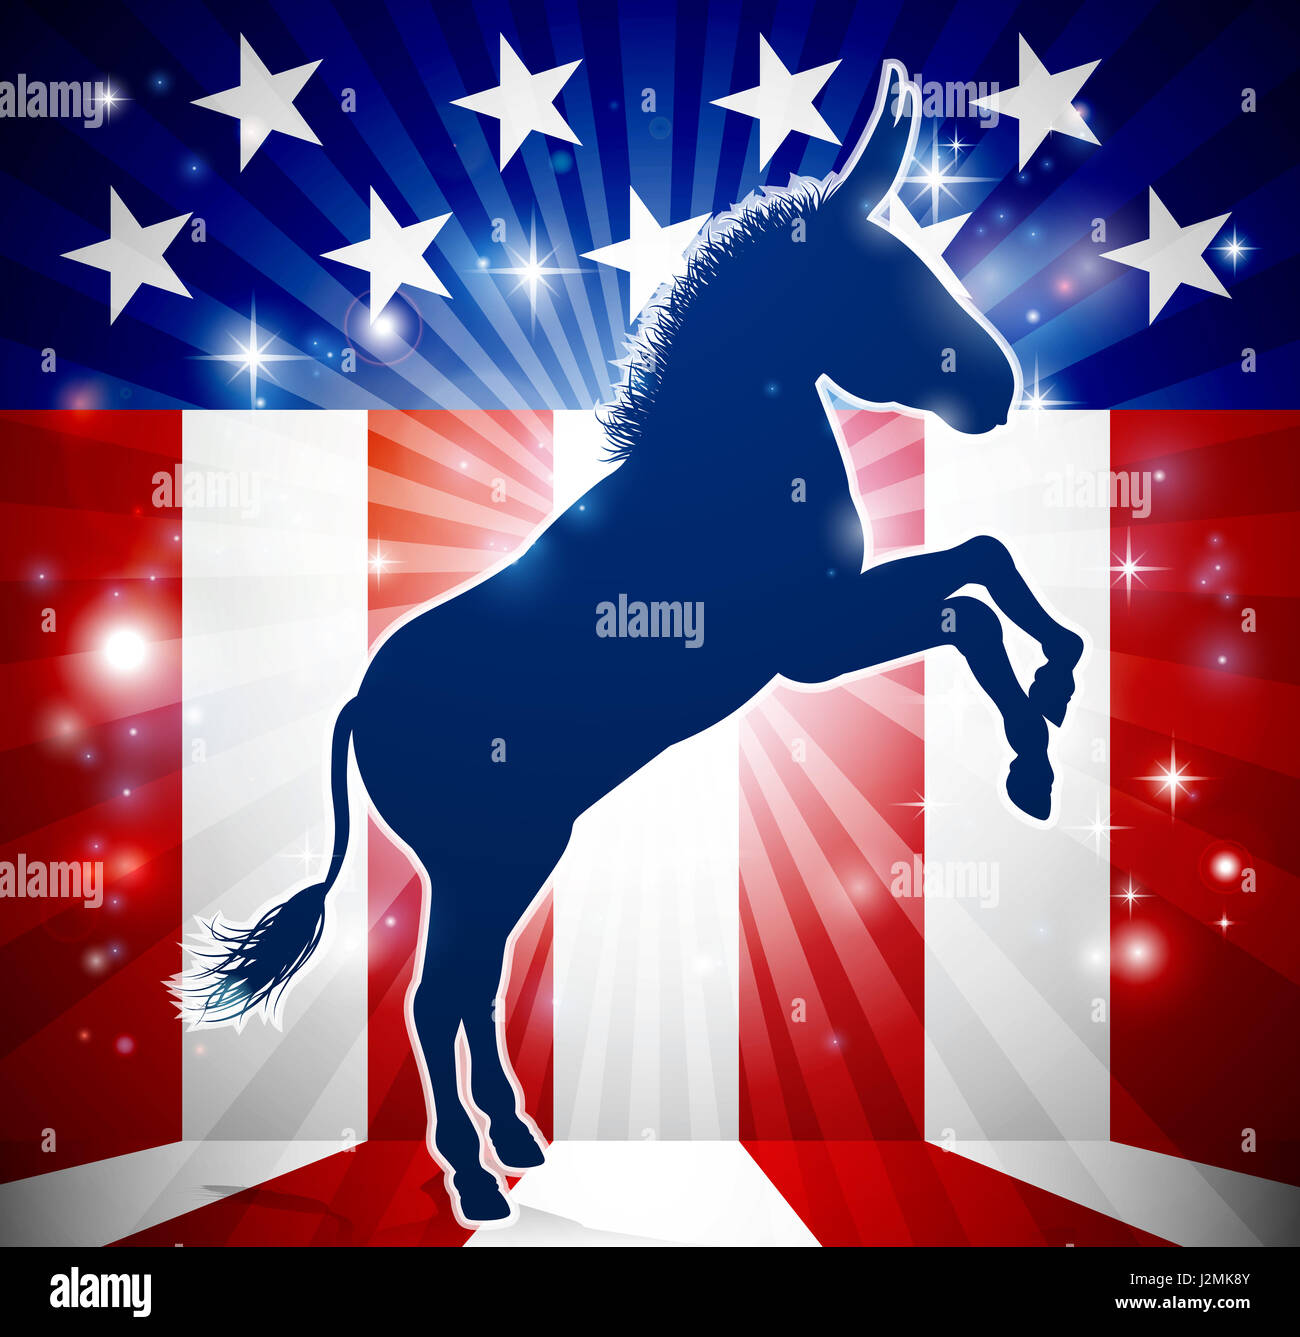 A donkey in silhouette with an American flag in the background democrat political mascot animal - Stock Image